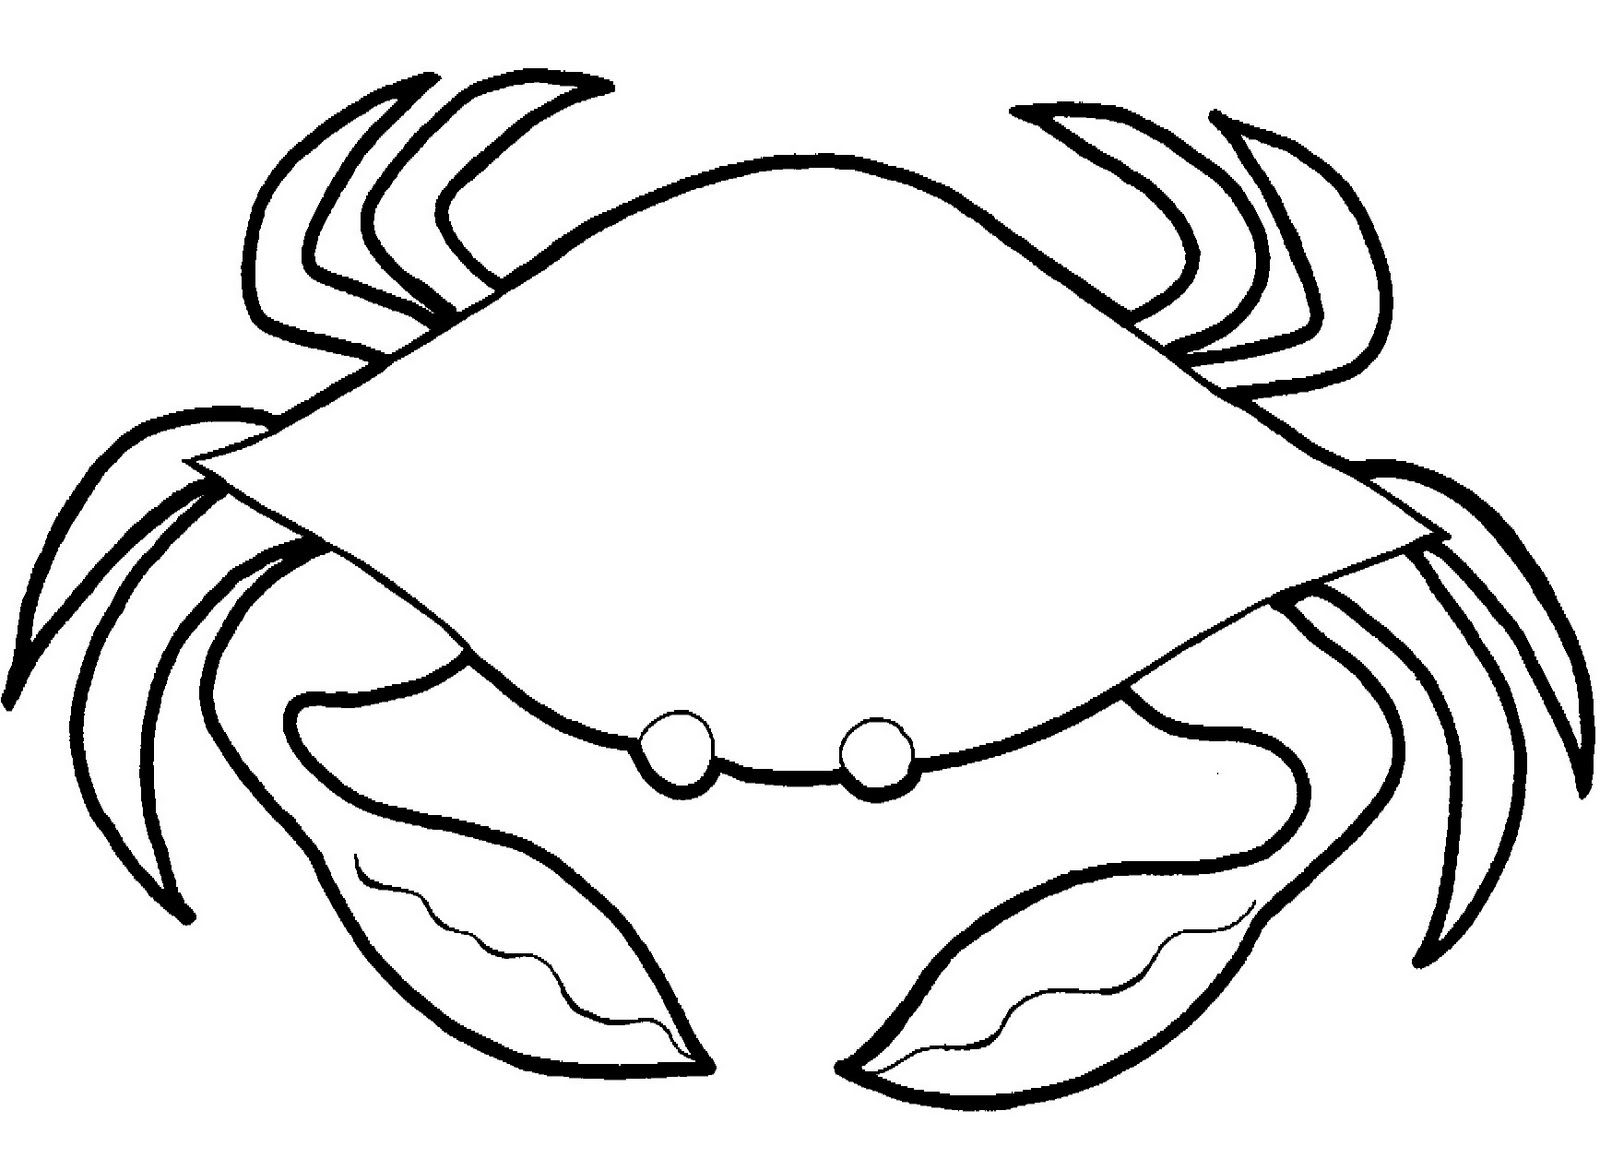 Blue Crab Coloring Page Bed Mattress